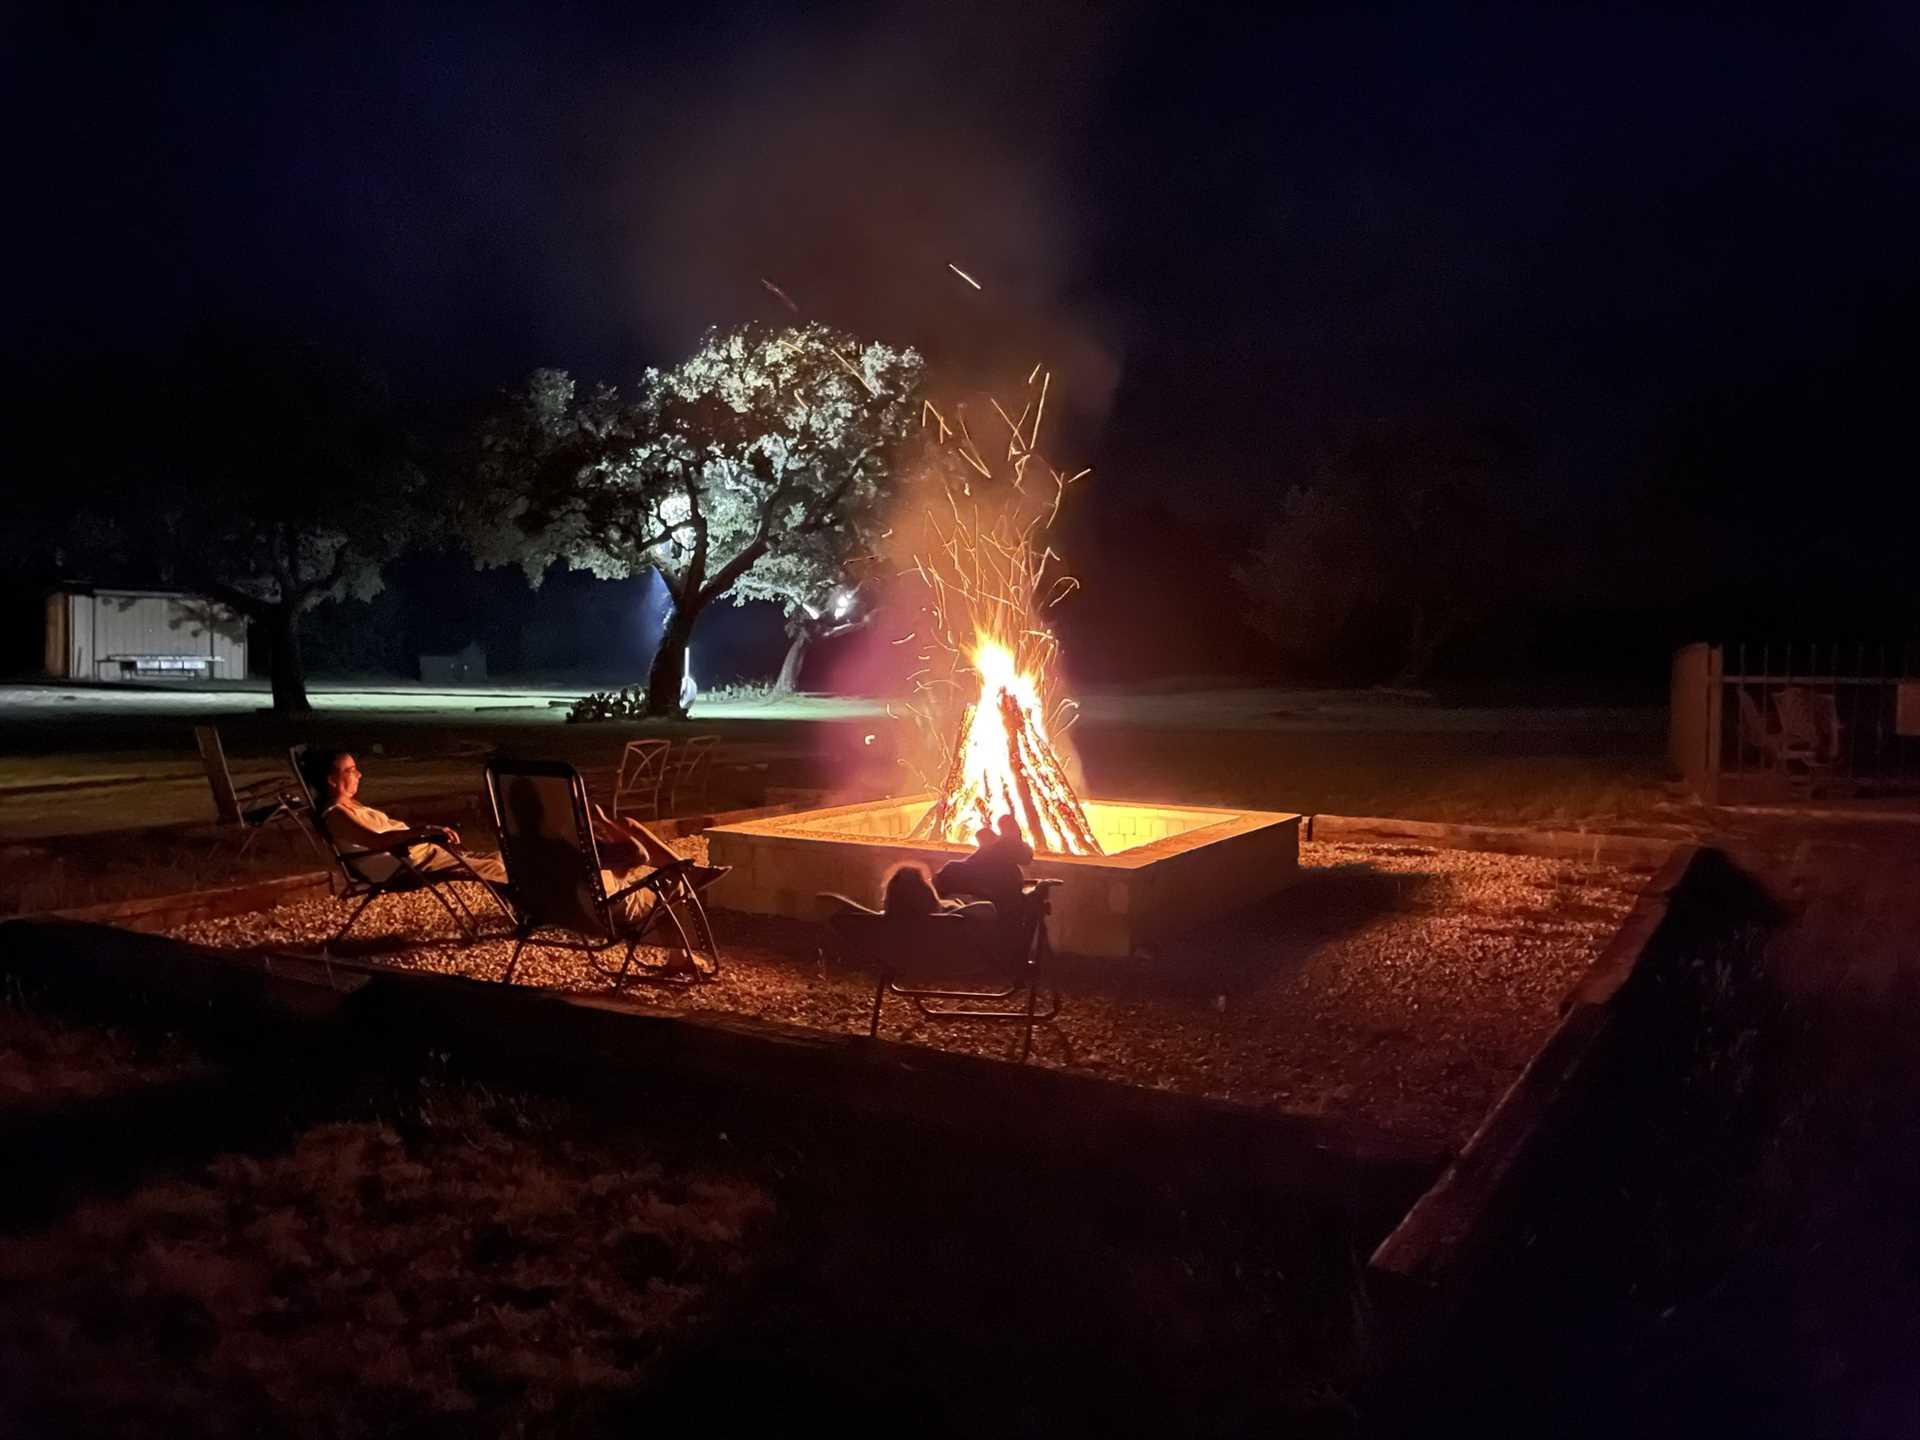 There's nothing more relaxing at the end of the day than marveling at a colorful Hill Country sunset, and then relaxing around the crackling fire pit.